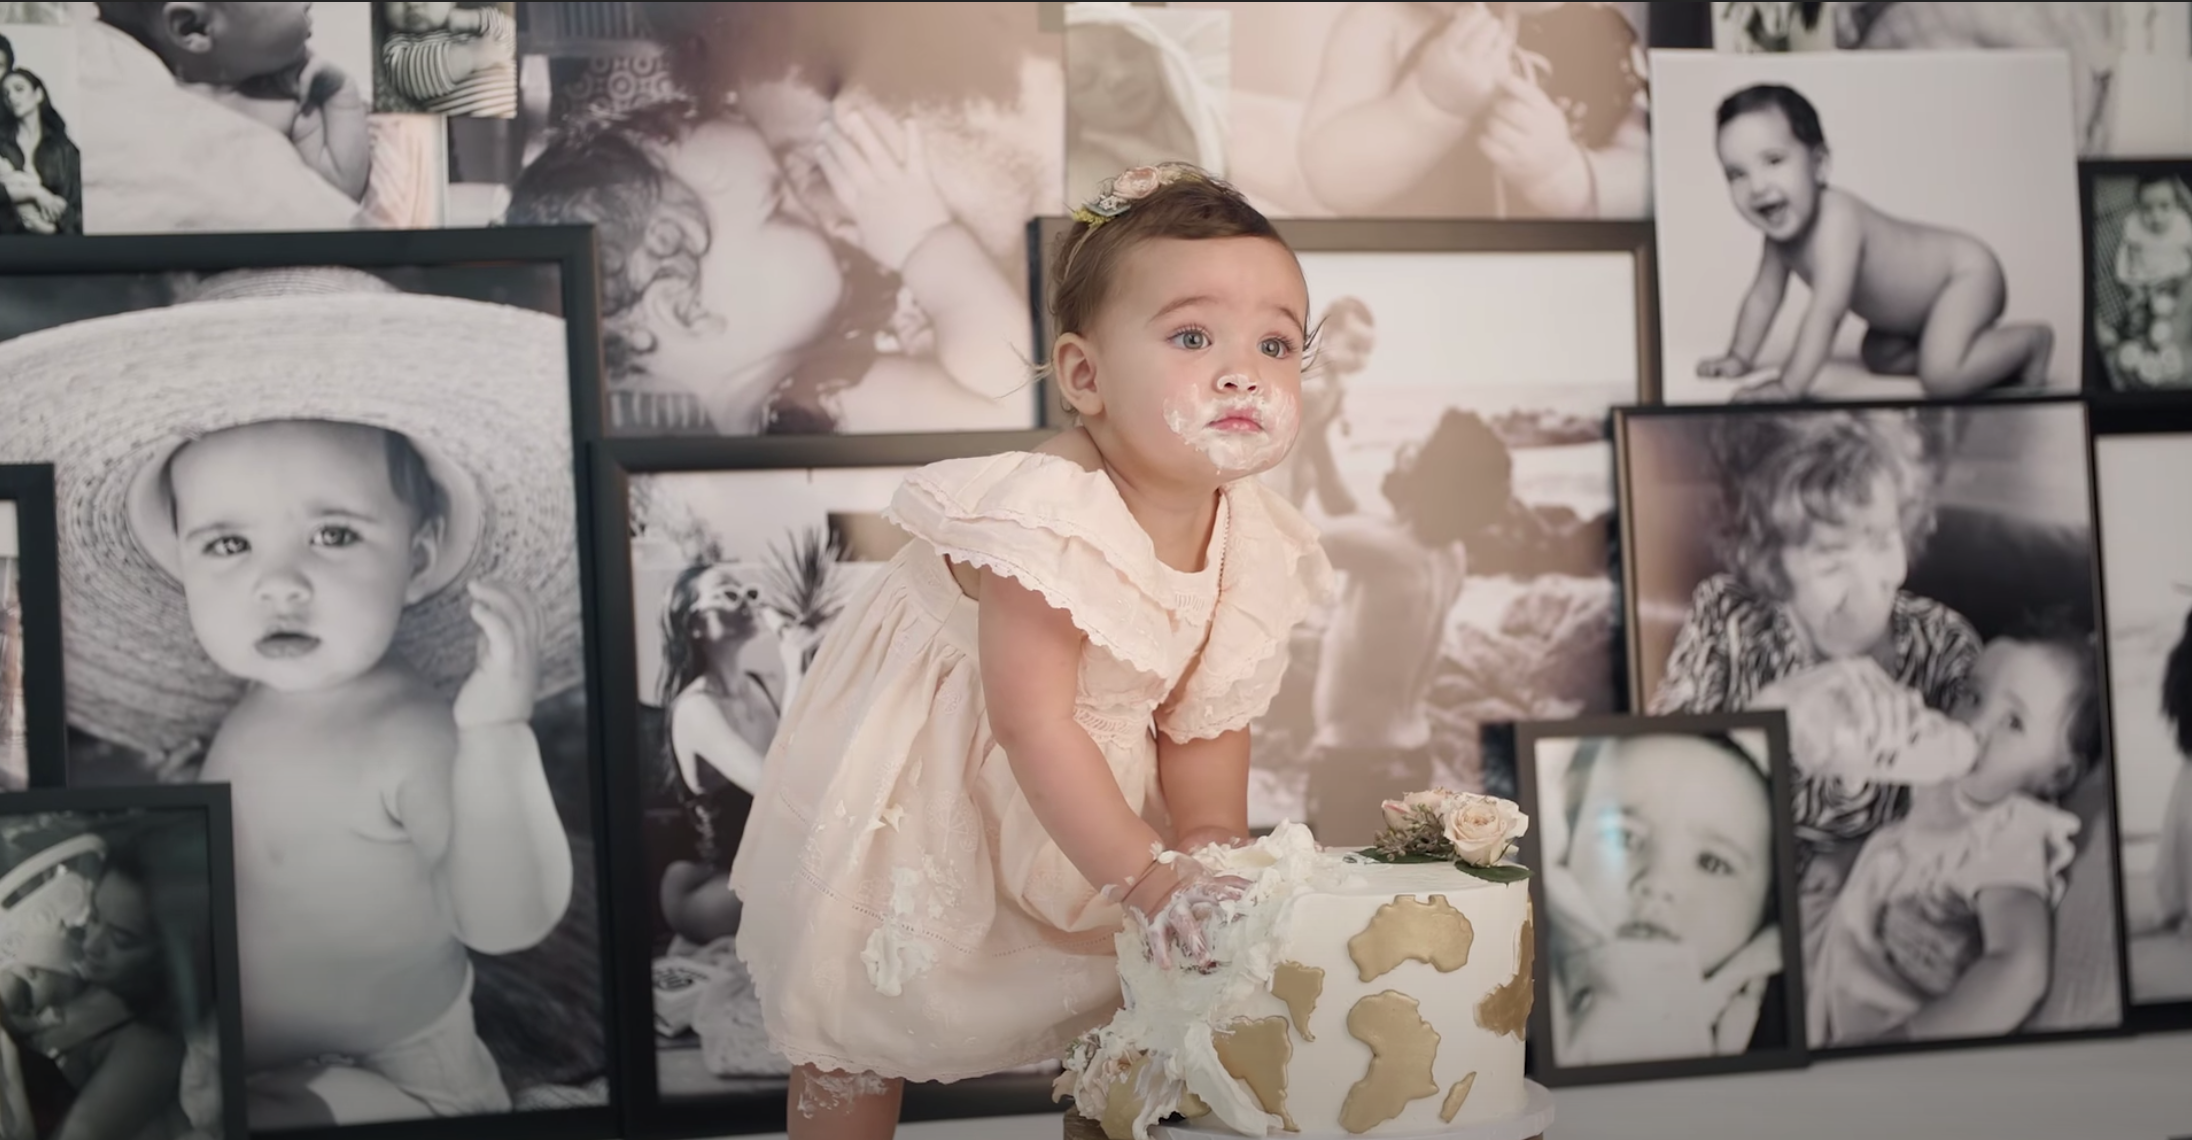 Atlas wears a dress and has birthday cake all over her face for her photo shoot